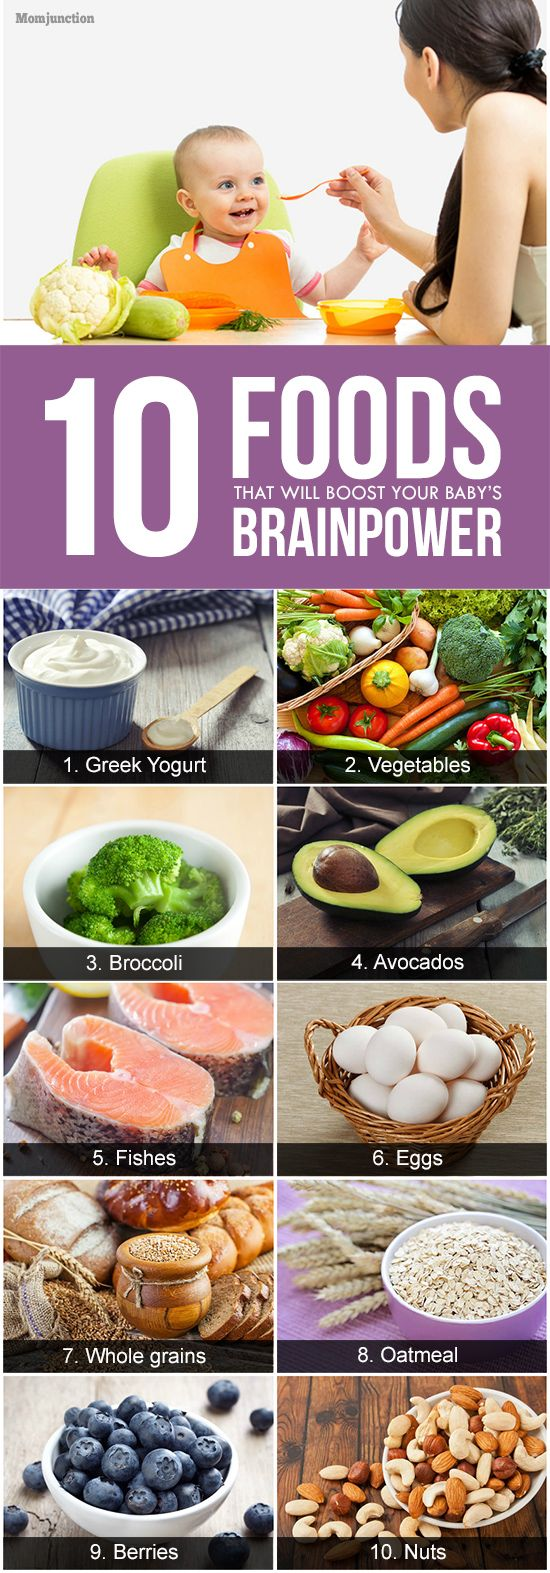 Best health food items - 10 Foods That Will Boost Your Baby S Brainpower